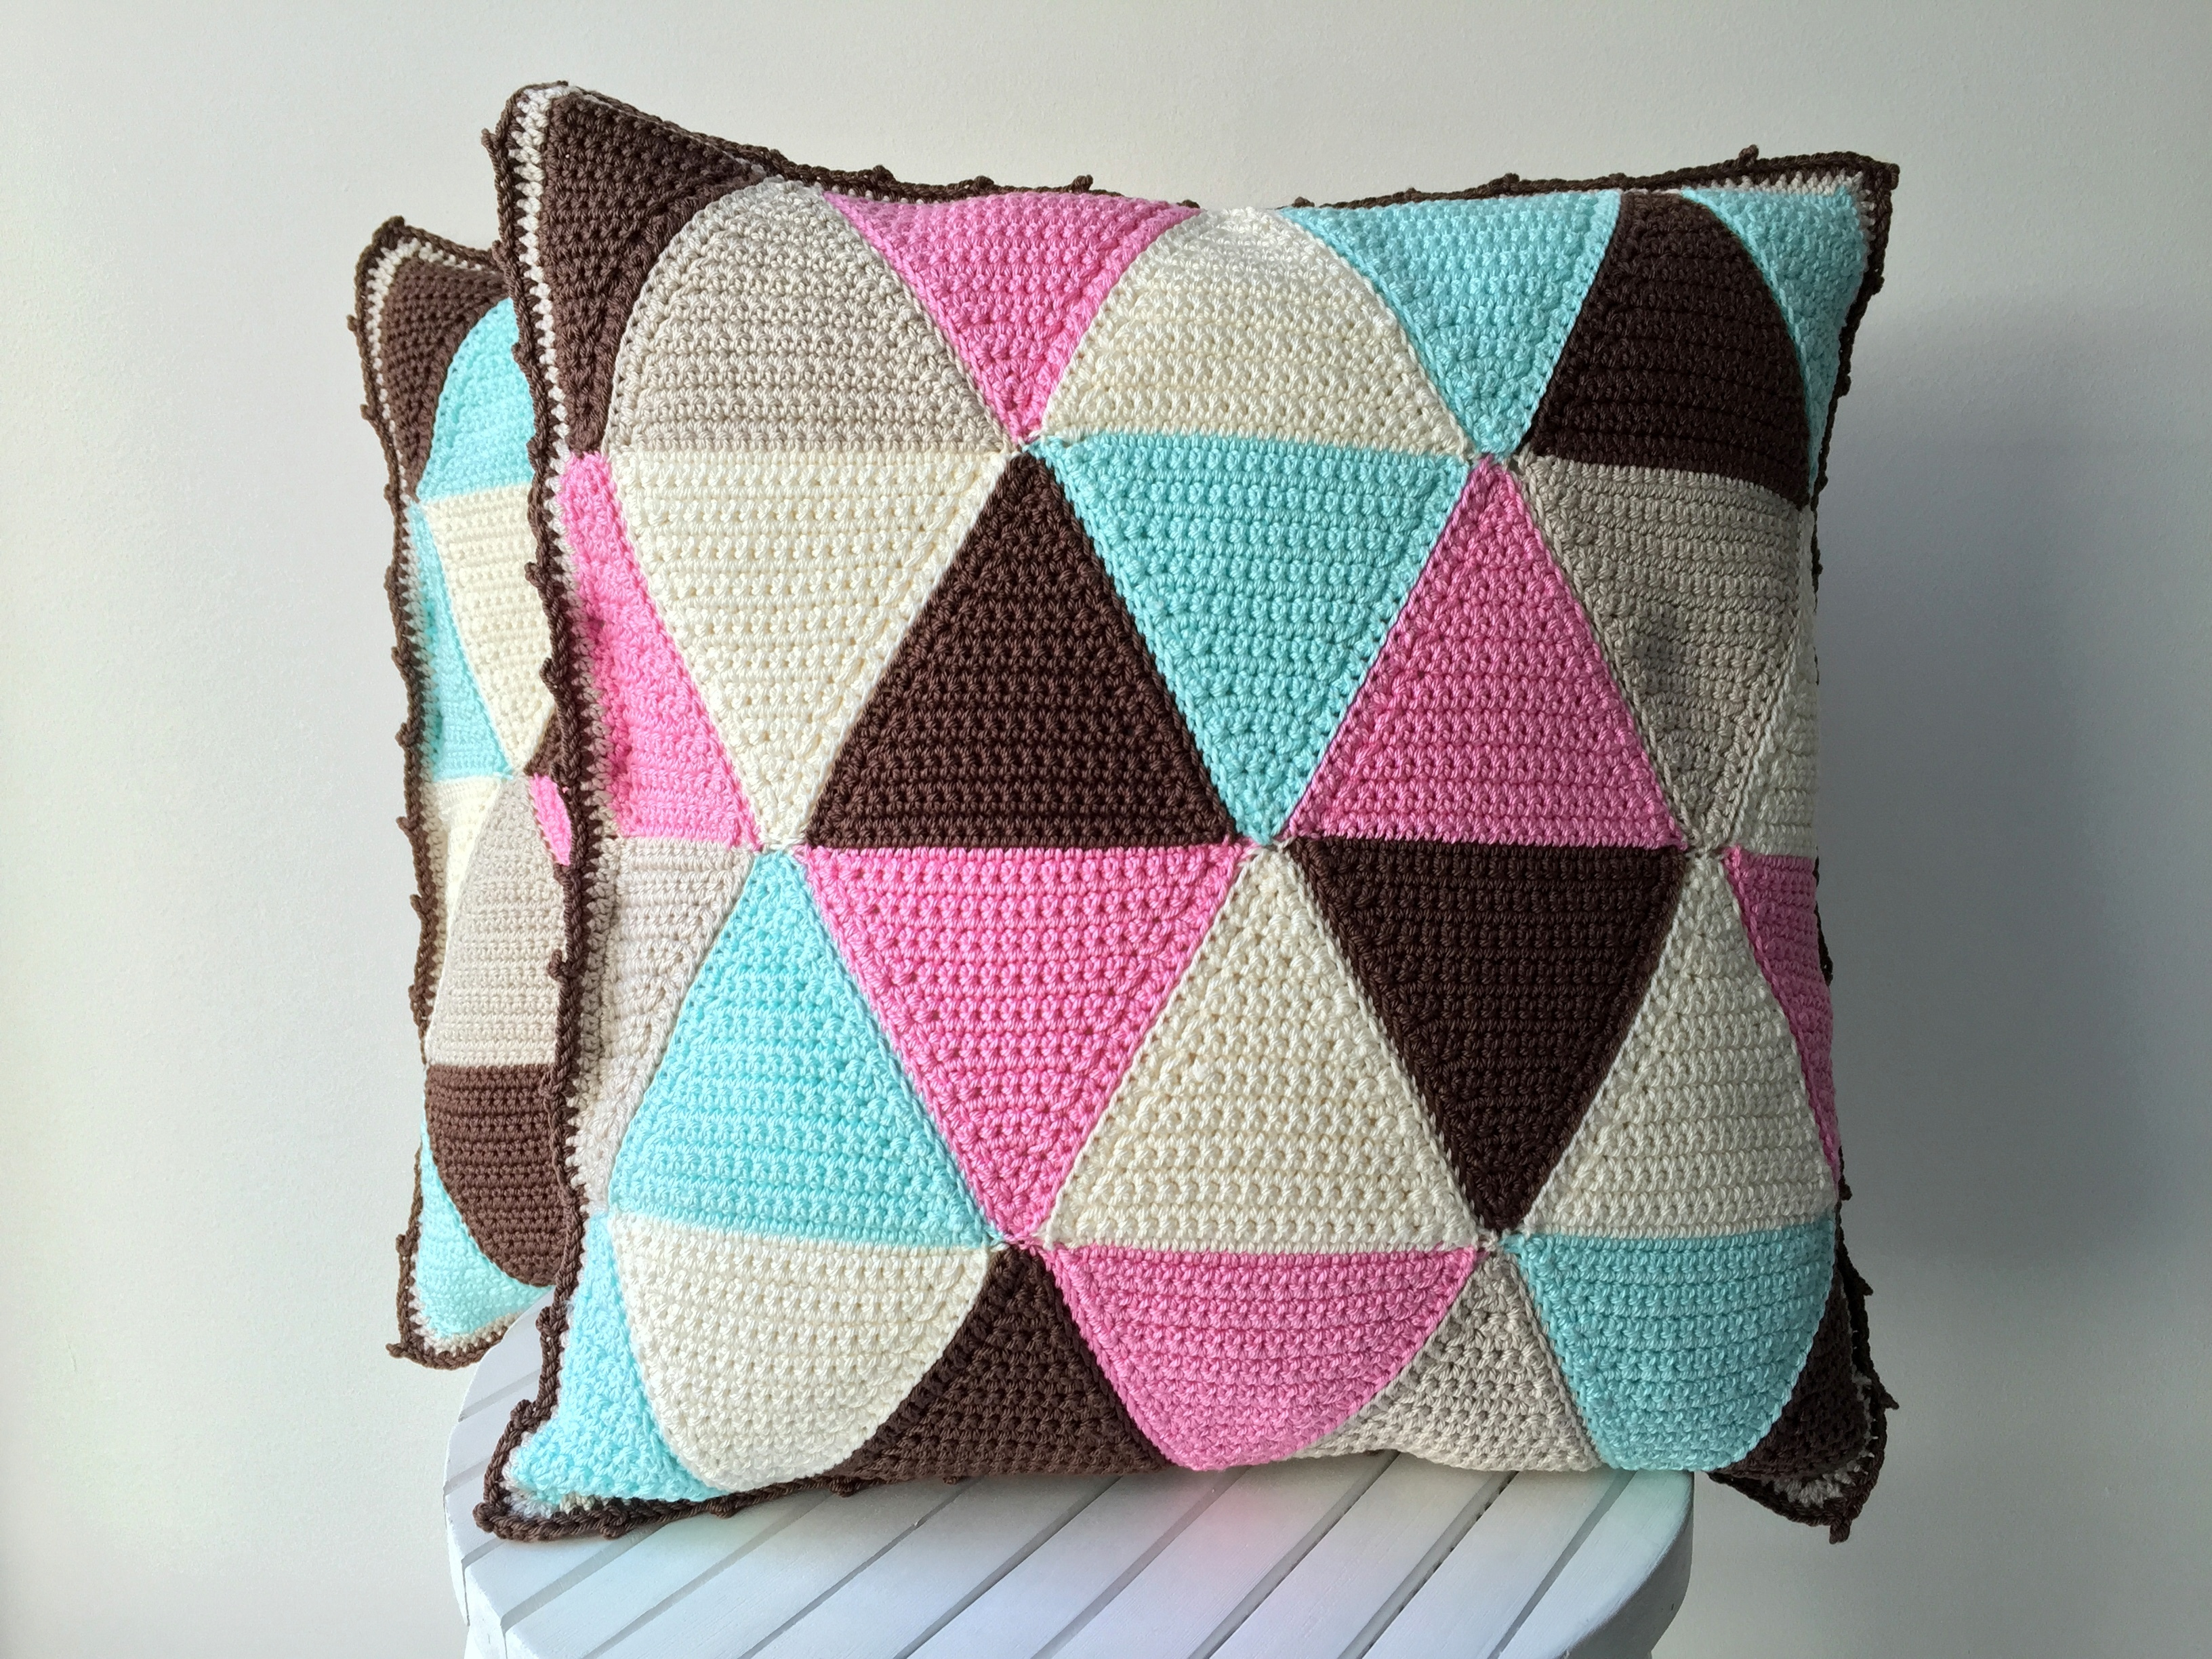 maRRose - CCC - The Gelato Gemini Triangle Cushions-34